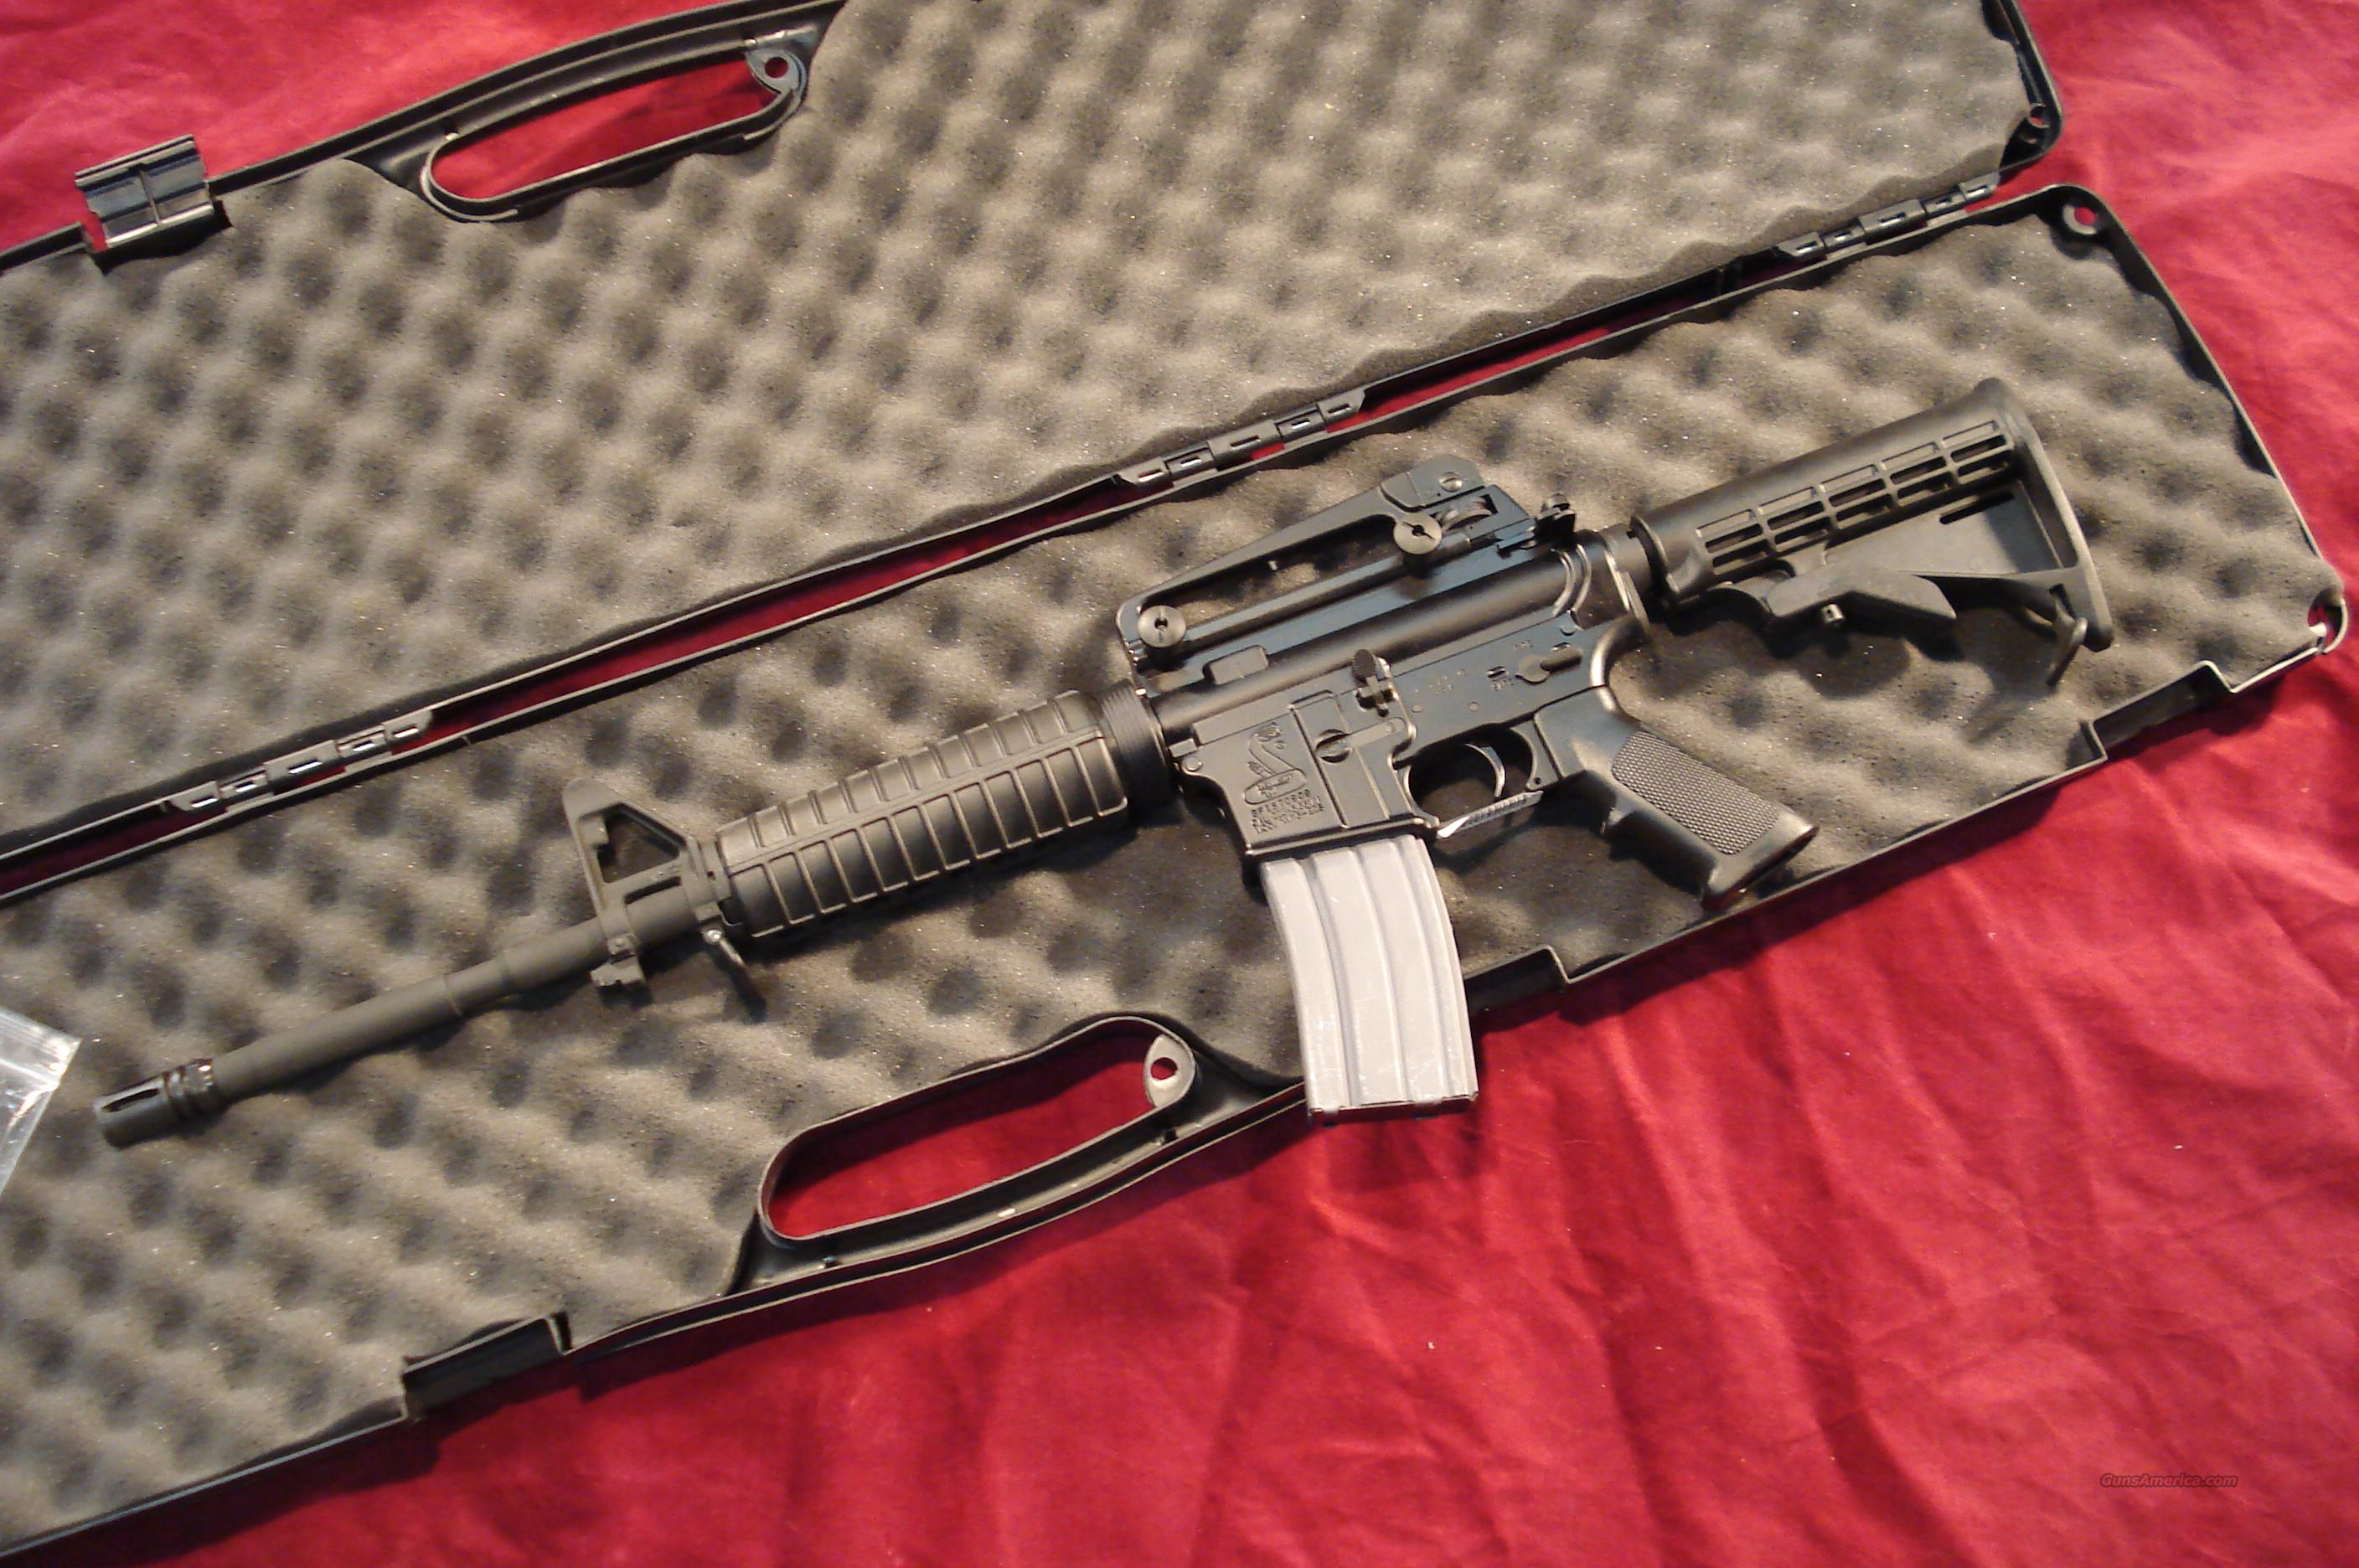 BUSHMASTER M4A3 PATROLMAN'S CARBINE 223CAL. NEW IN THE BOX  Guns > Rifles > Bushmaster Rifles > Complete Rifles